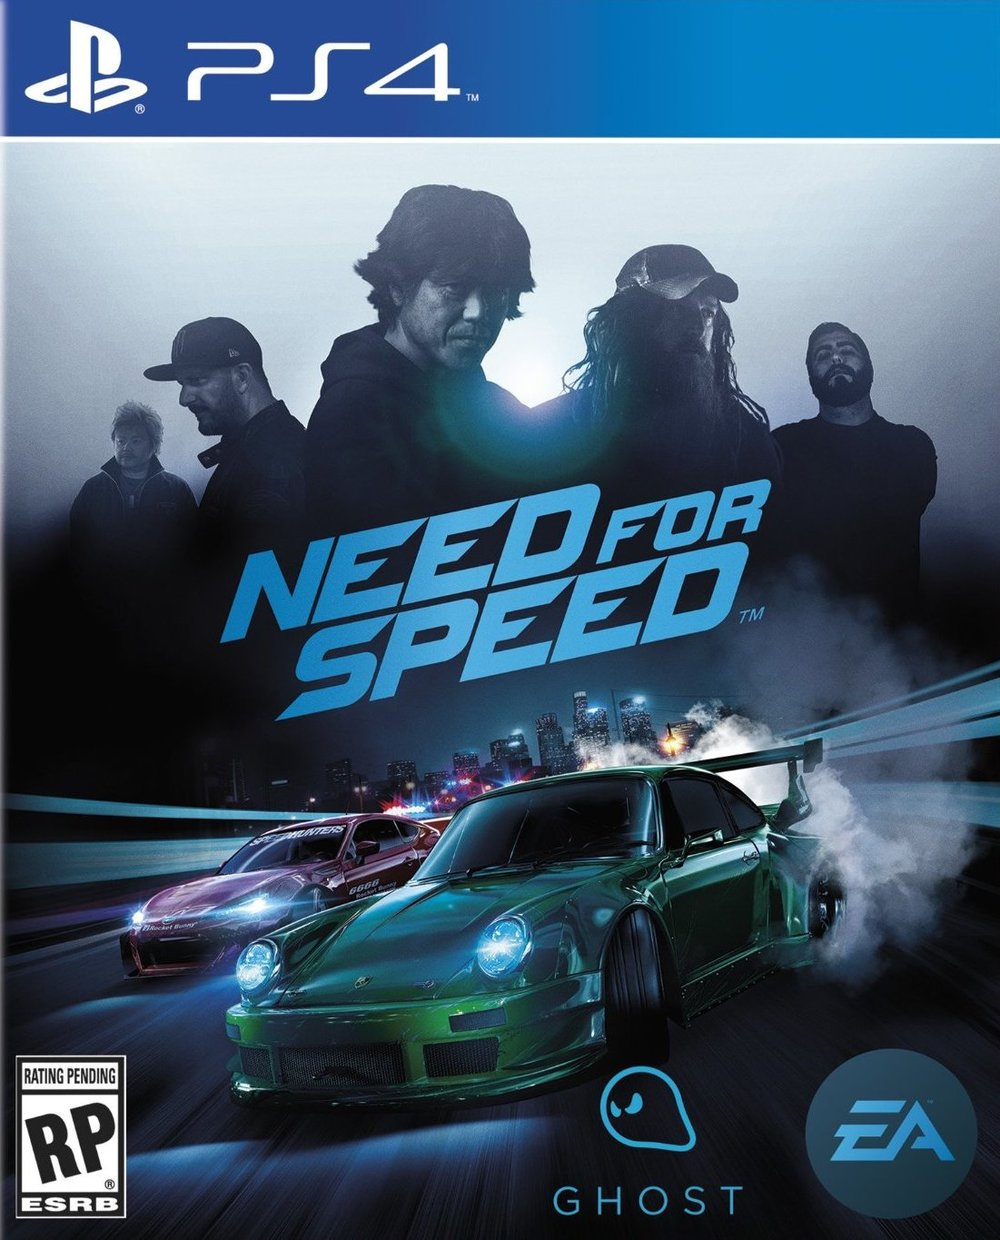 CLICK   HERE   TO SEE WHAT I WAS HIRED TO RECORD FOR THE PREVIOUS NEED FOR SPEED GAME